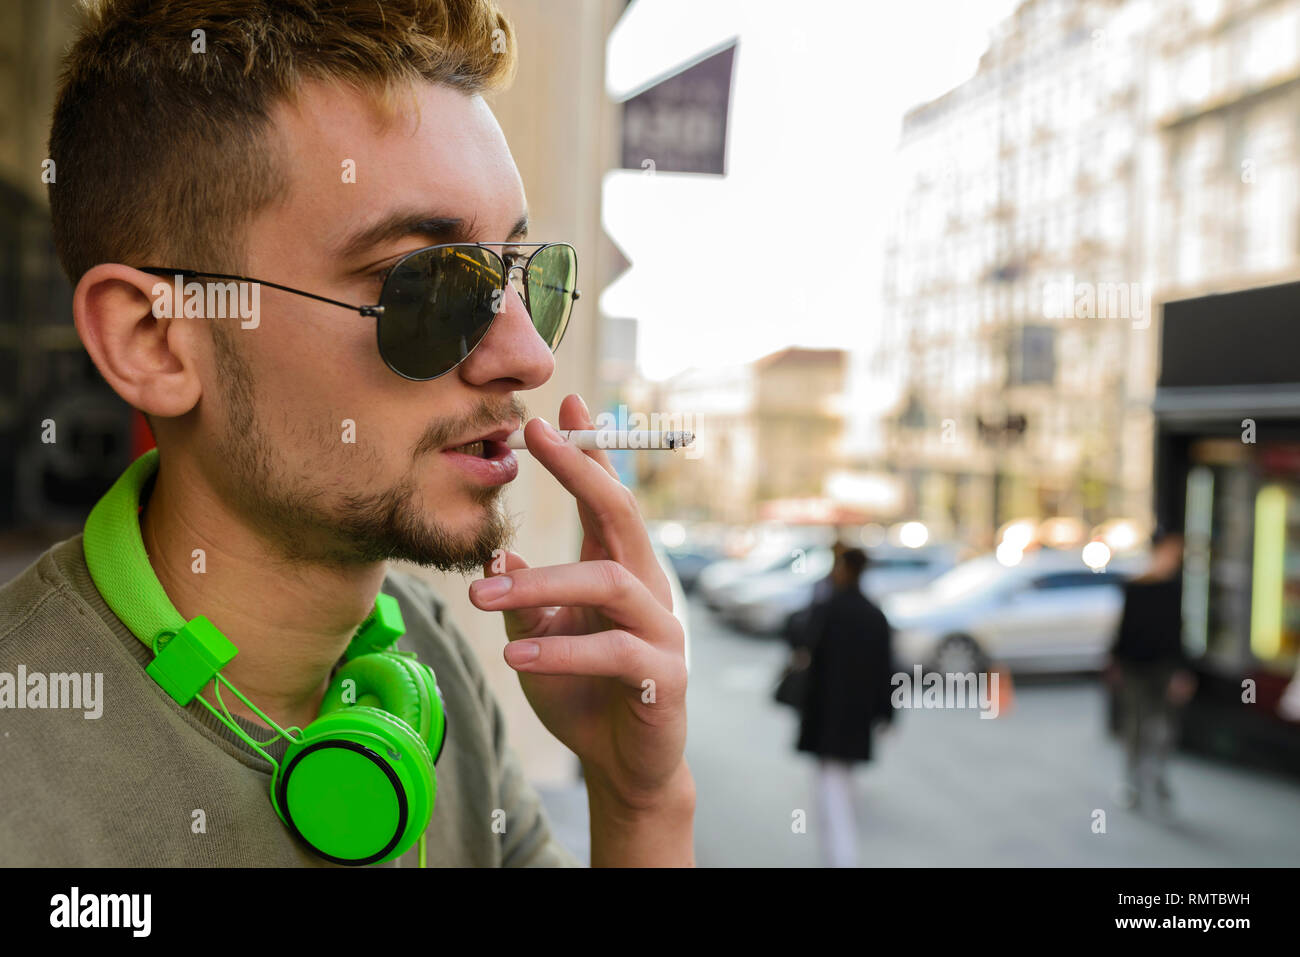 Young handsome man with green headphones and sunglasses enjoying a cigarette in the street. - Stock Image